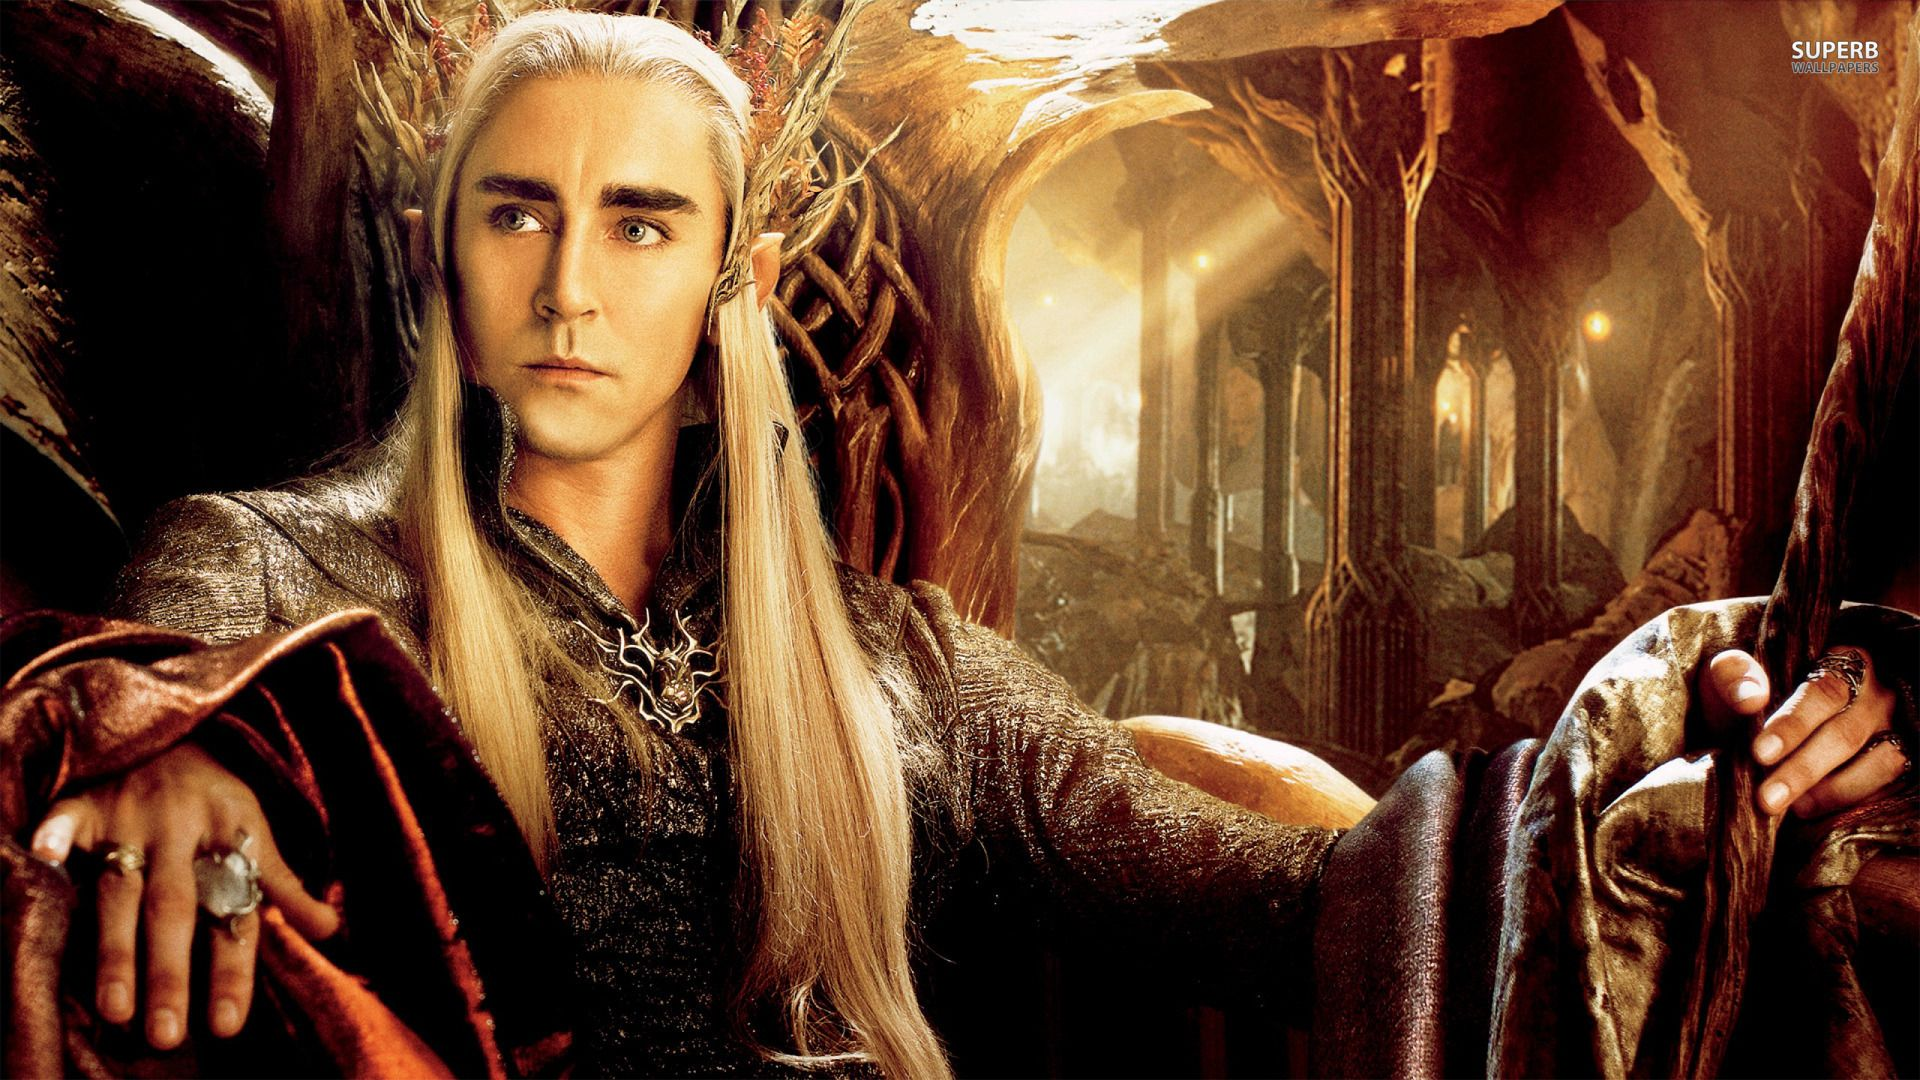 dress - Desolation Thranduil of smaug armor pictures video